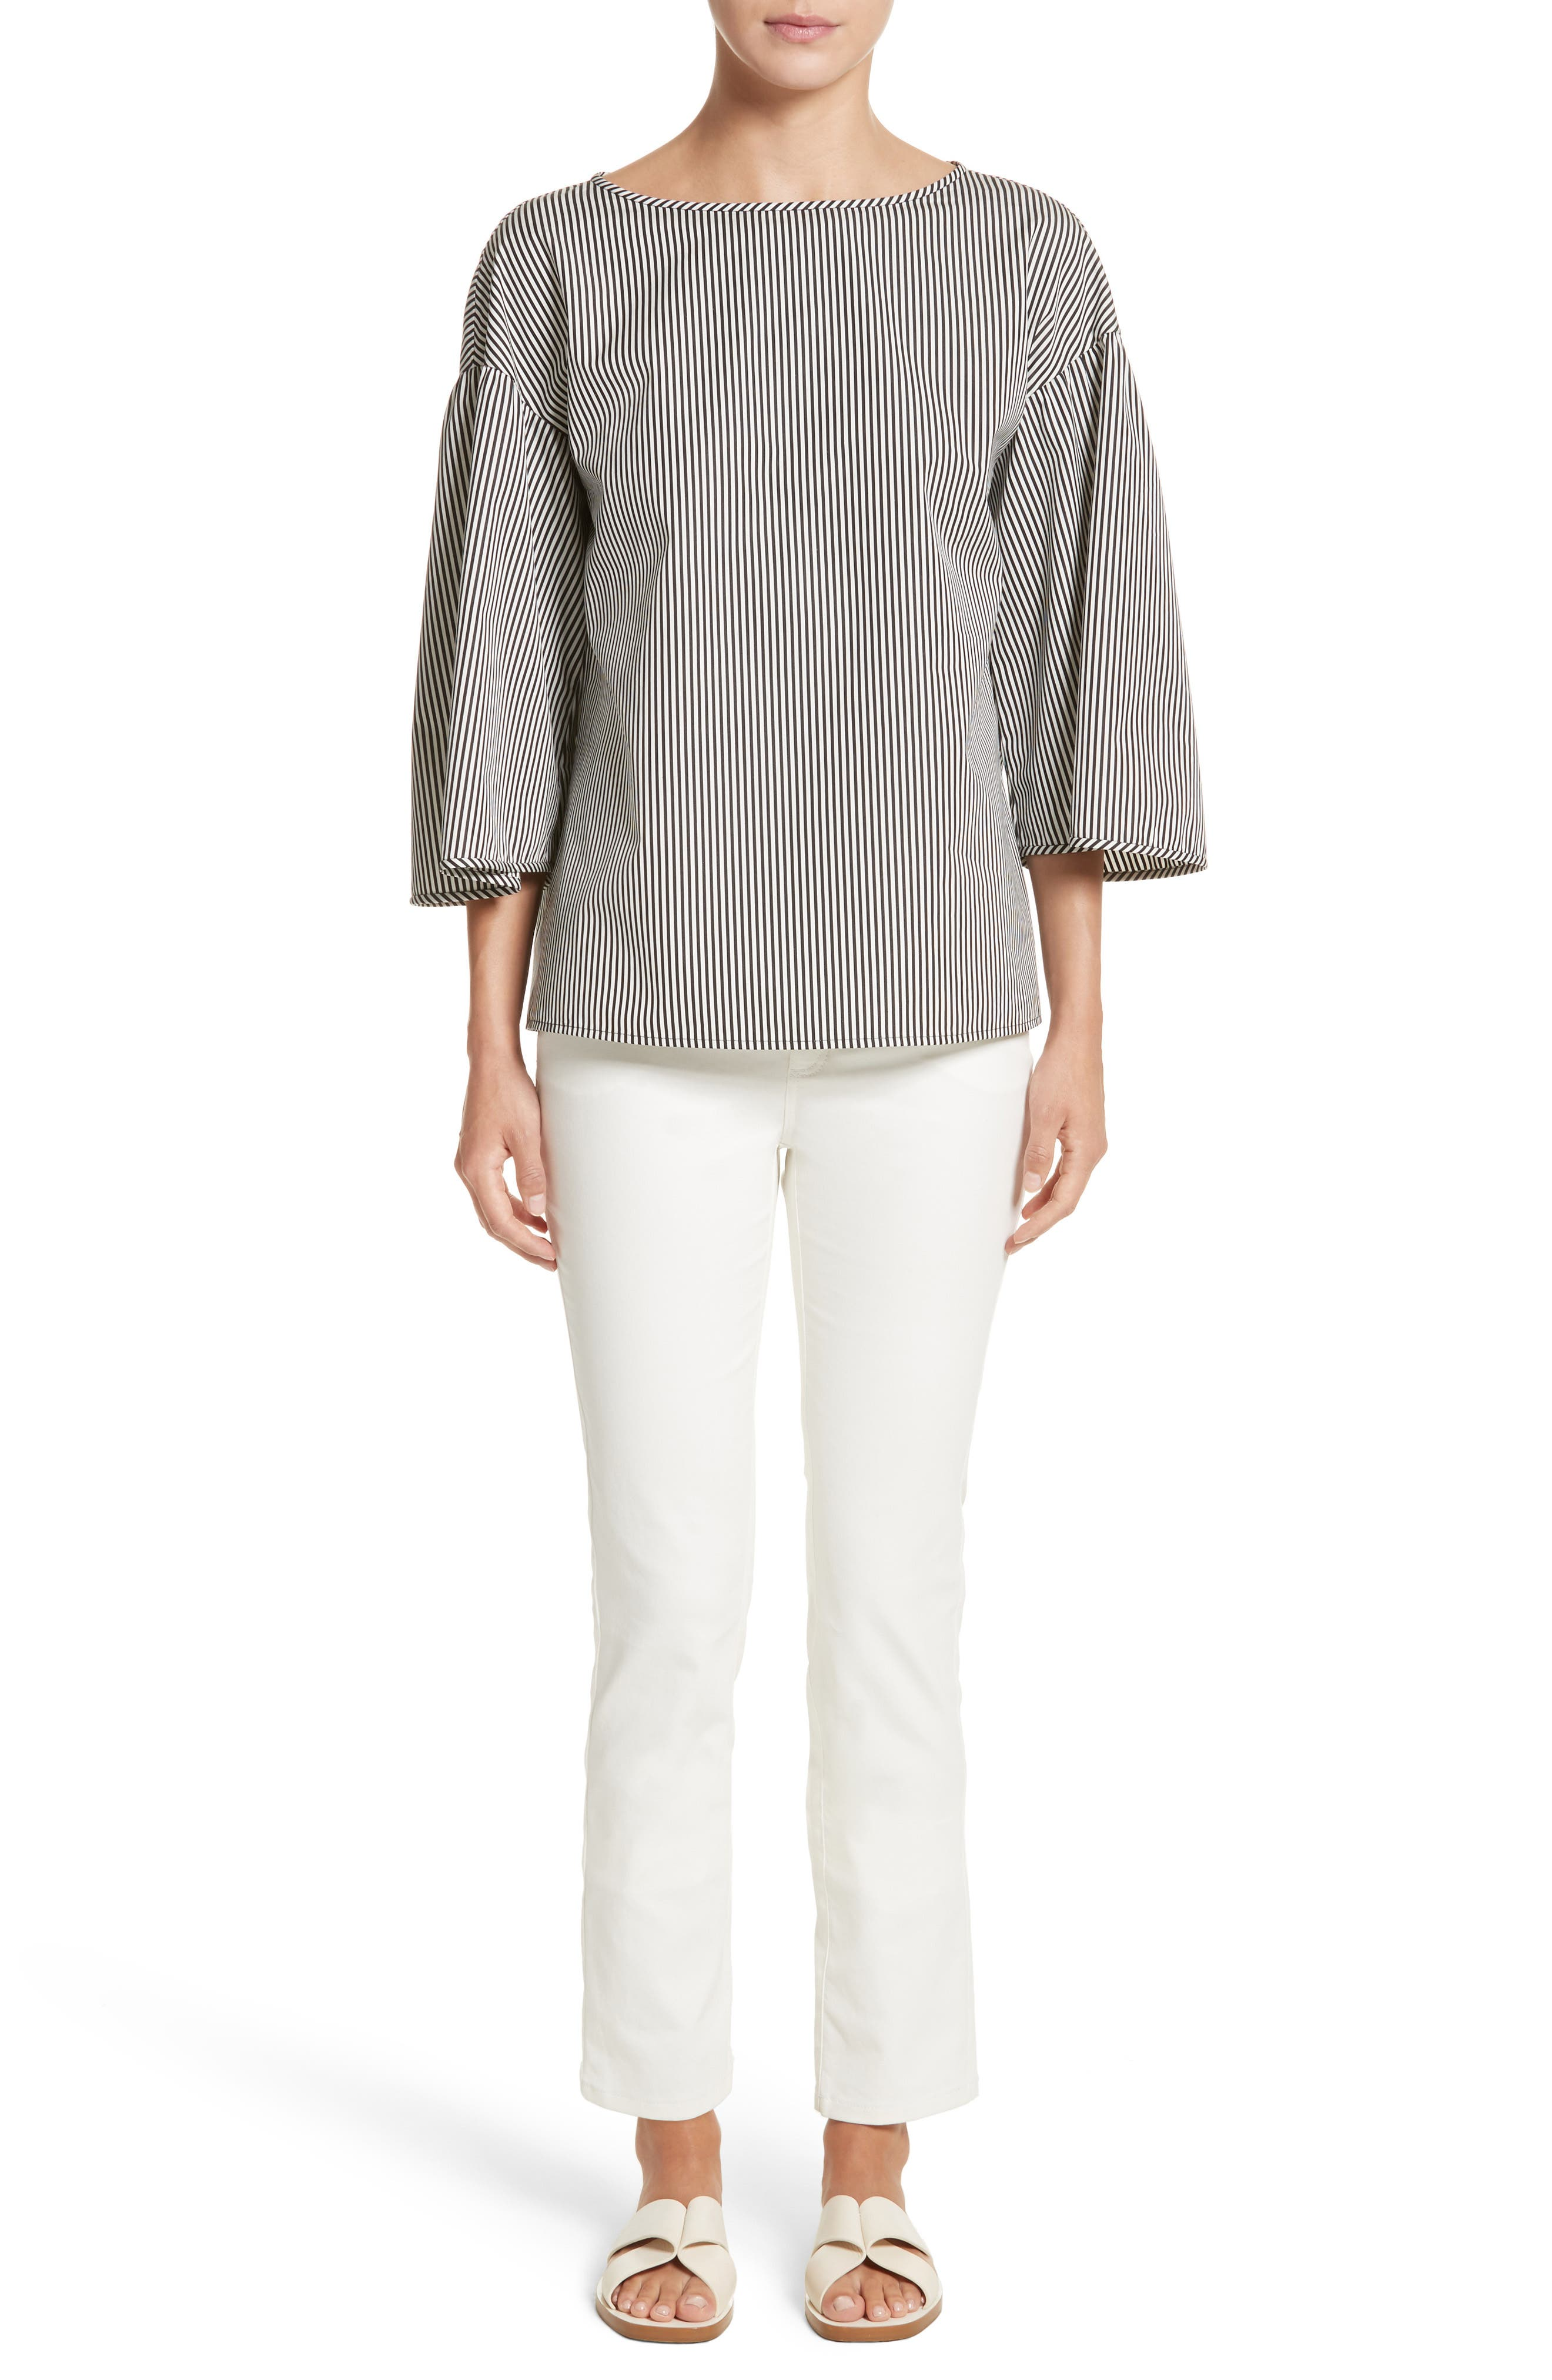 Gwendolyn Blouse,                             Alternate thumbnail 7, color,                             083